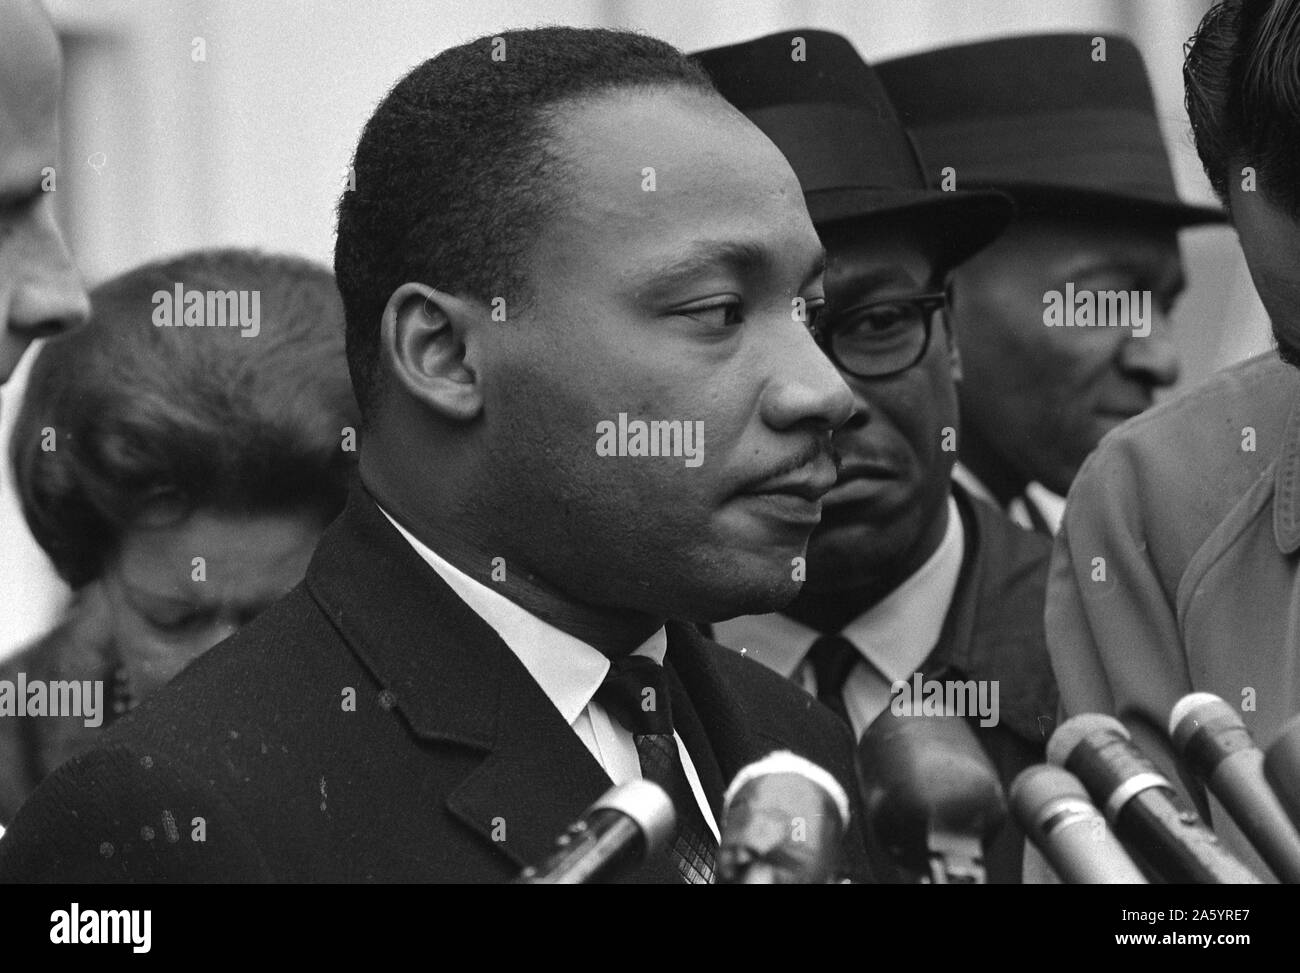 Martin Luther King, Jr. (1929-1968) was an American Baptist minister, activist, humanitarian and leader in the African-American Civil Rights Movement. Stock Photo